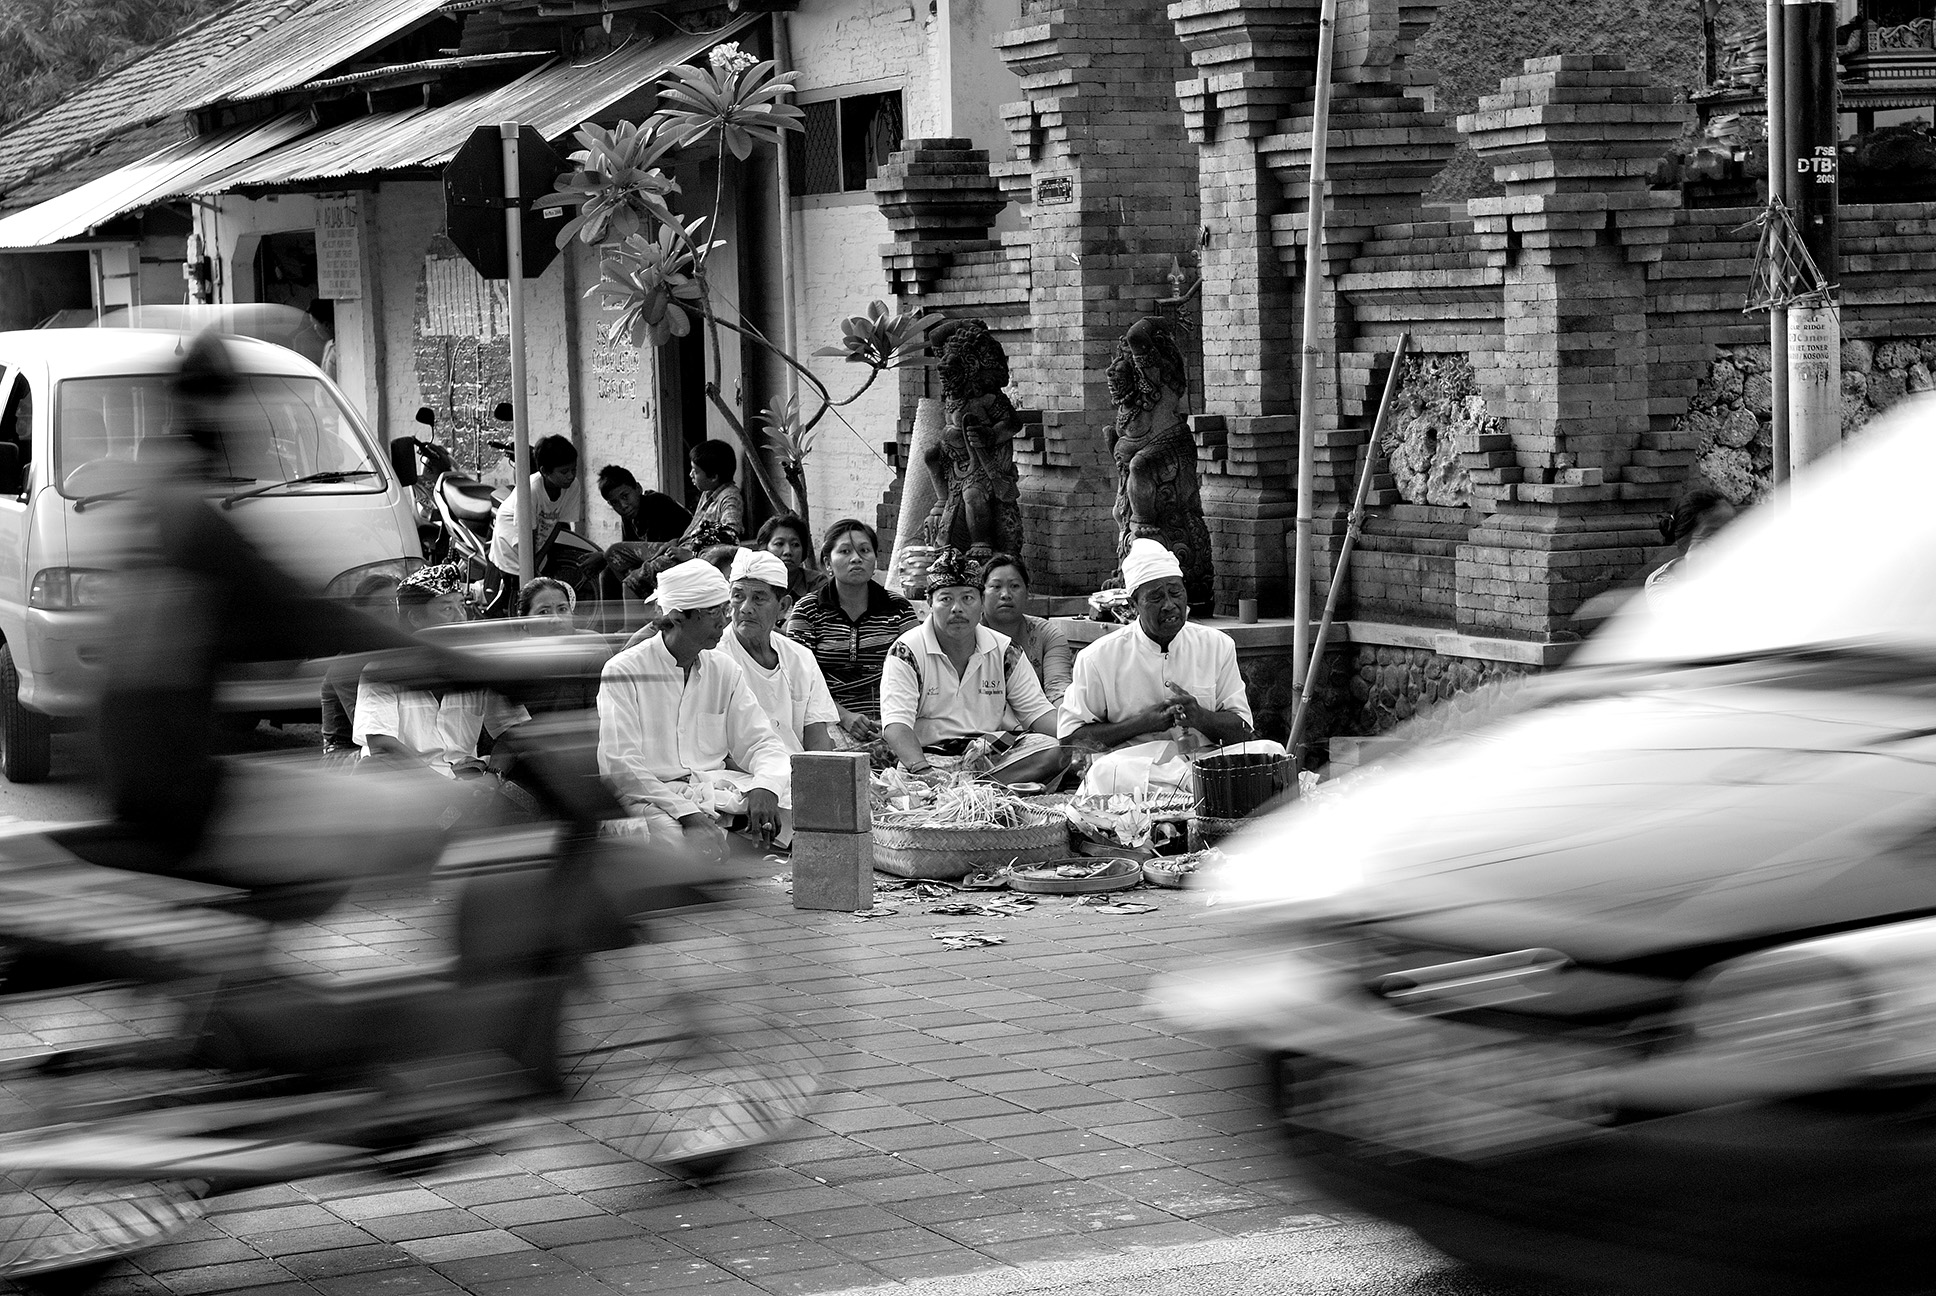 religious ceremony in Bali, at crossroads, as traffic streams by